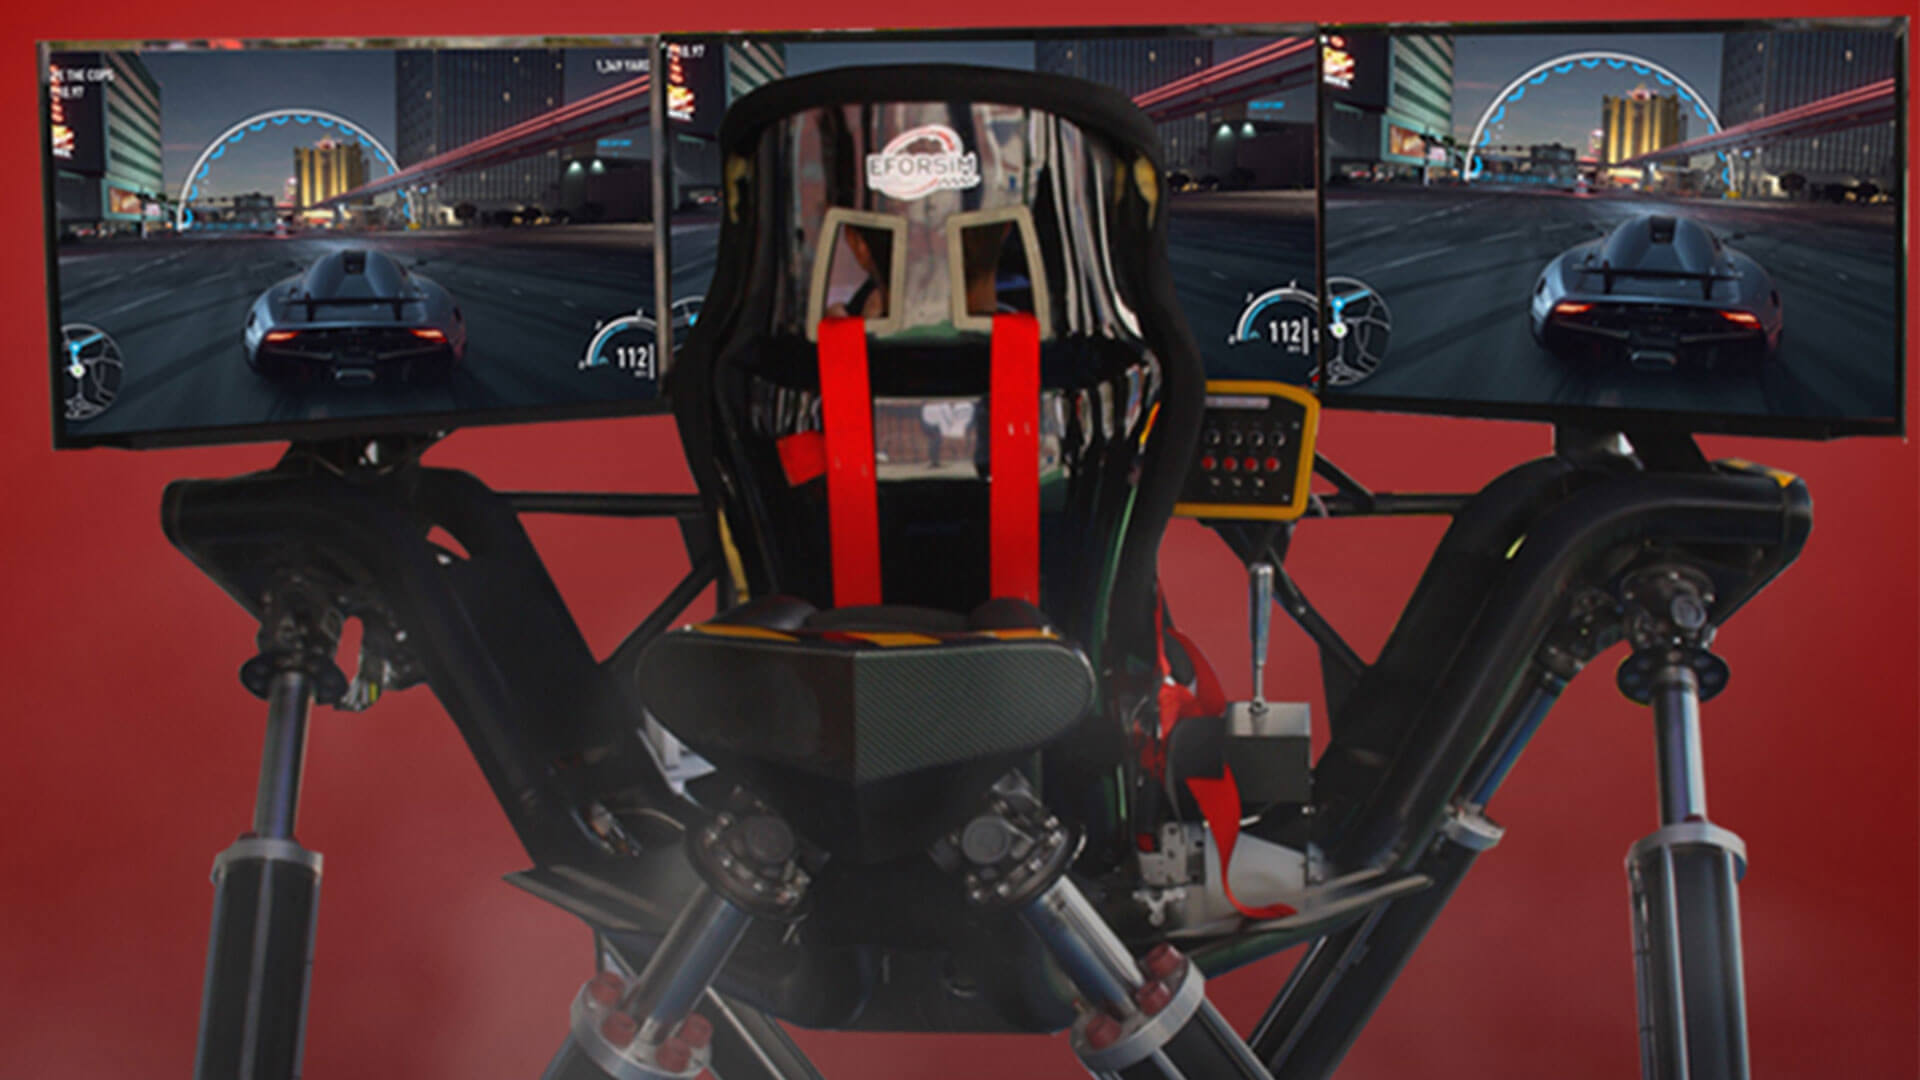 Racing Motion Simulators